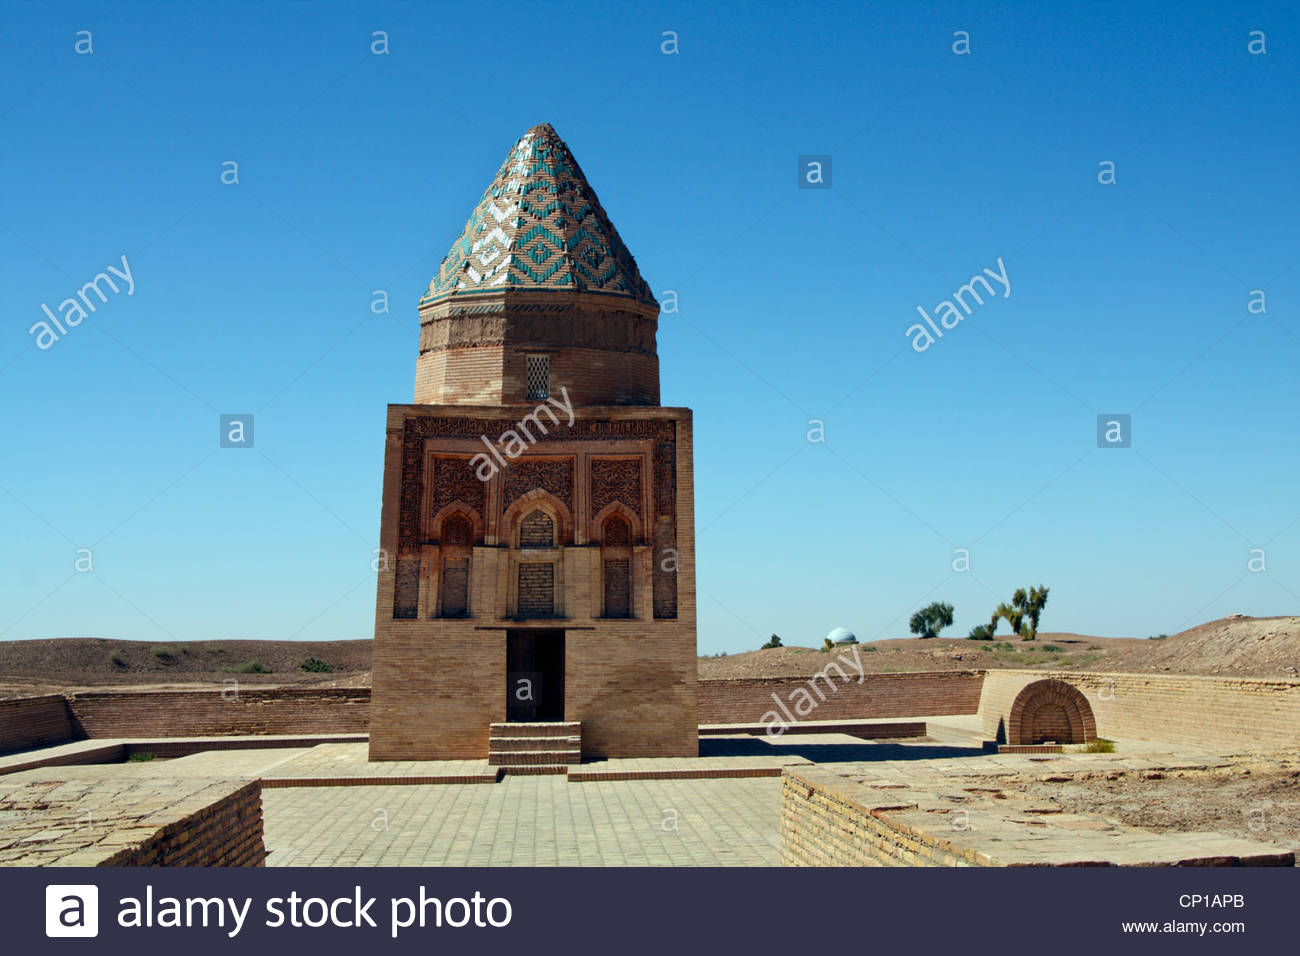 The 12th century Il-Arslan or Fakhr At-Din Razi mausoleum at Kunya-Urgench, Turkmenistan - Stock Image